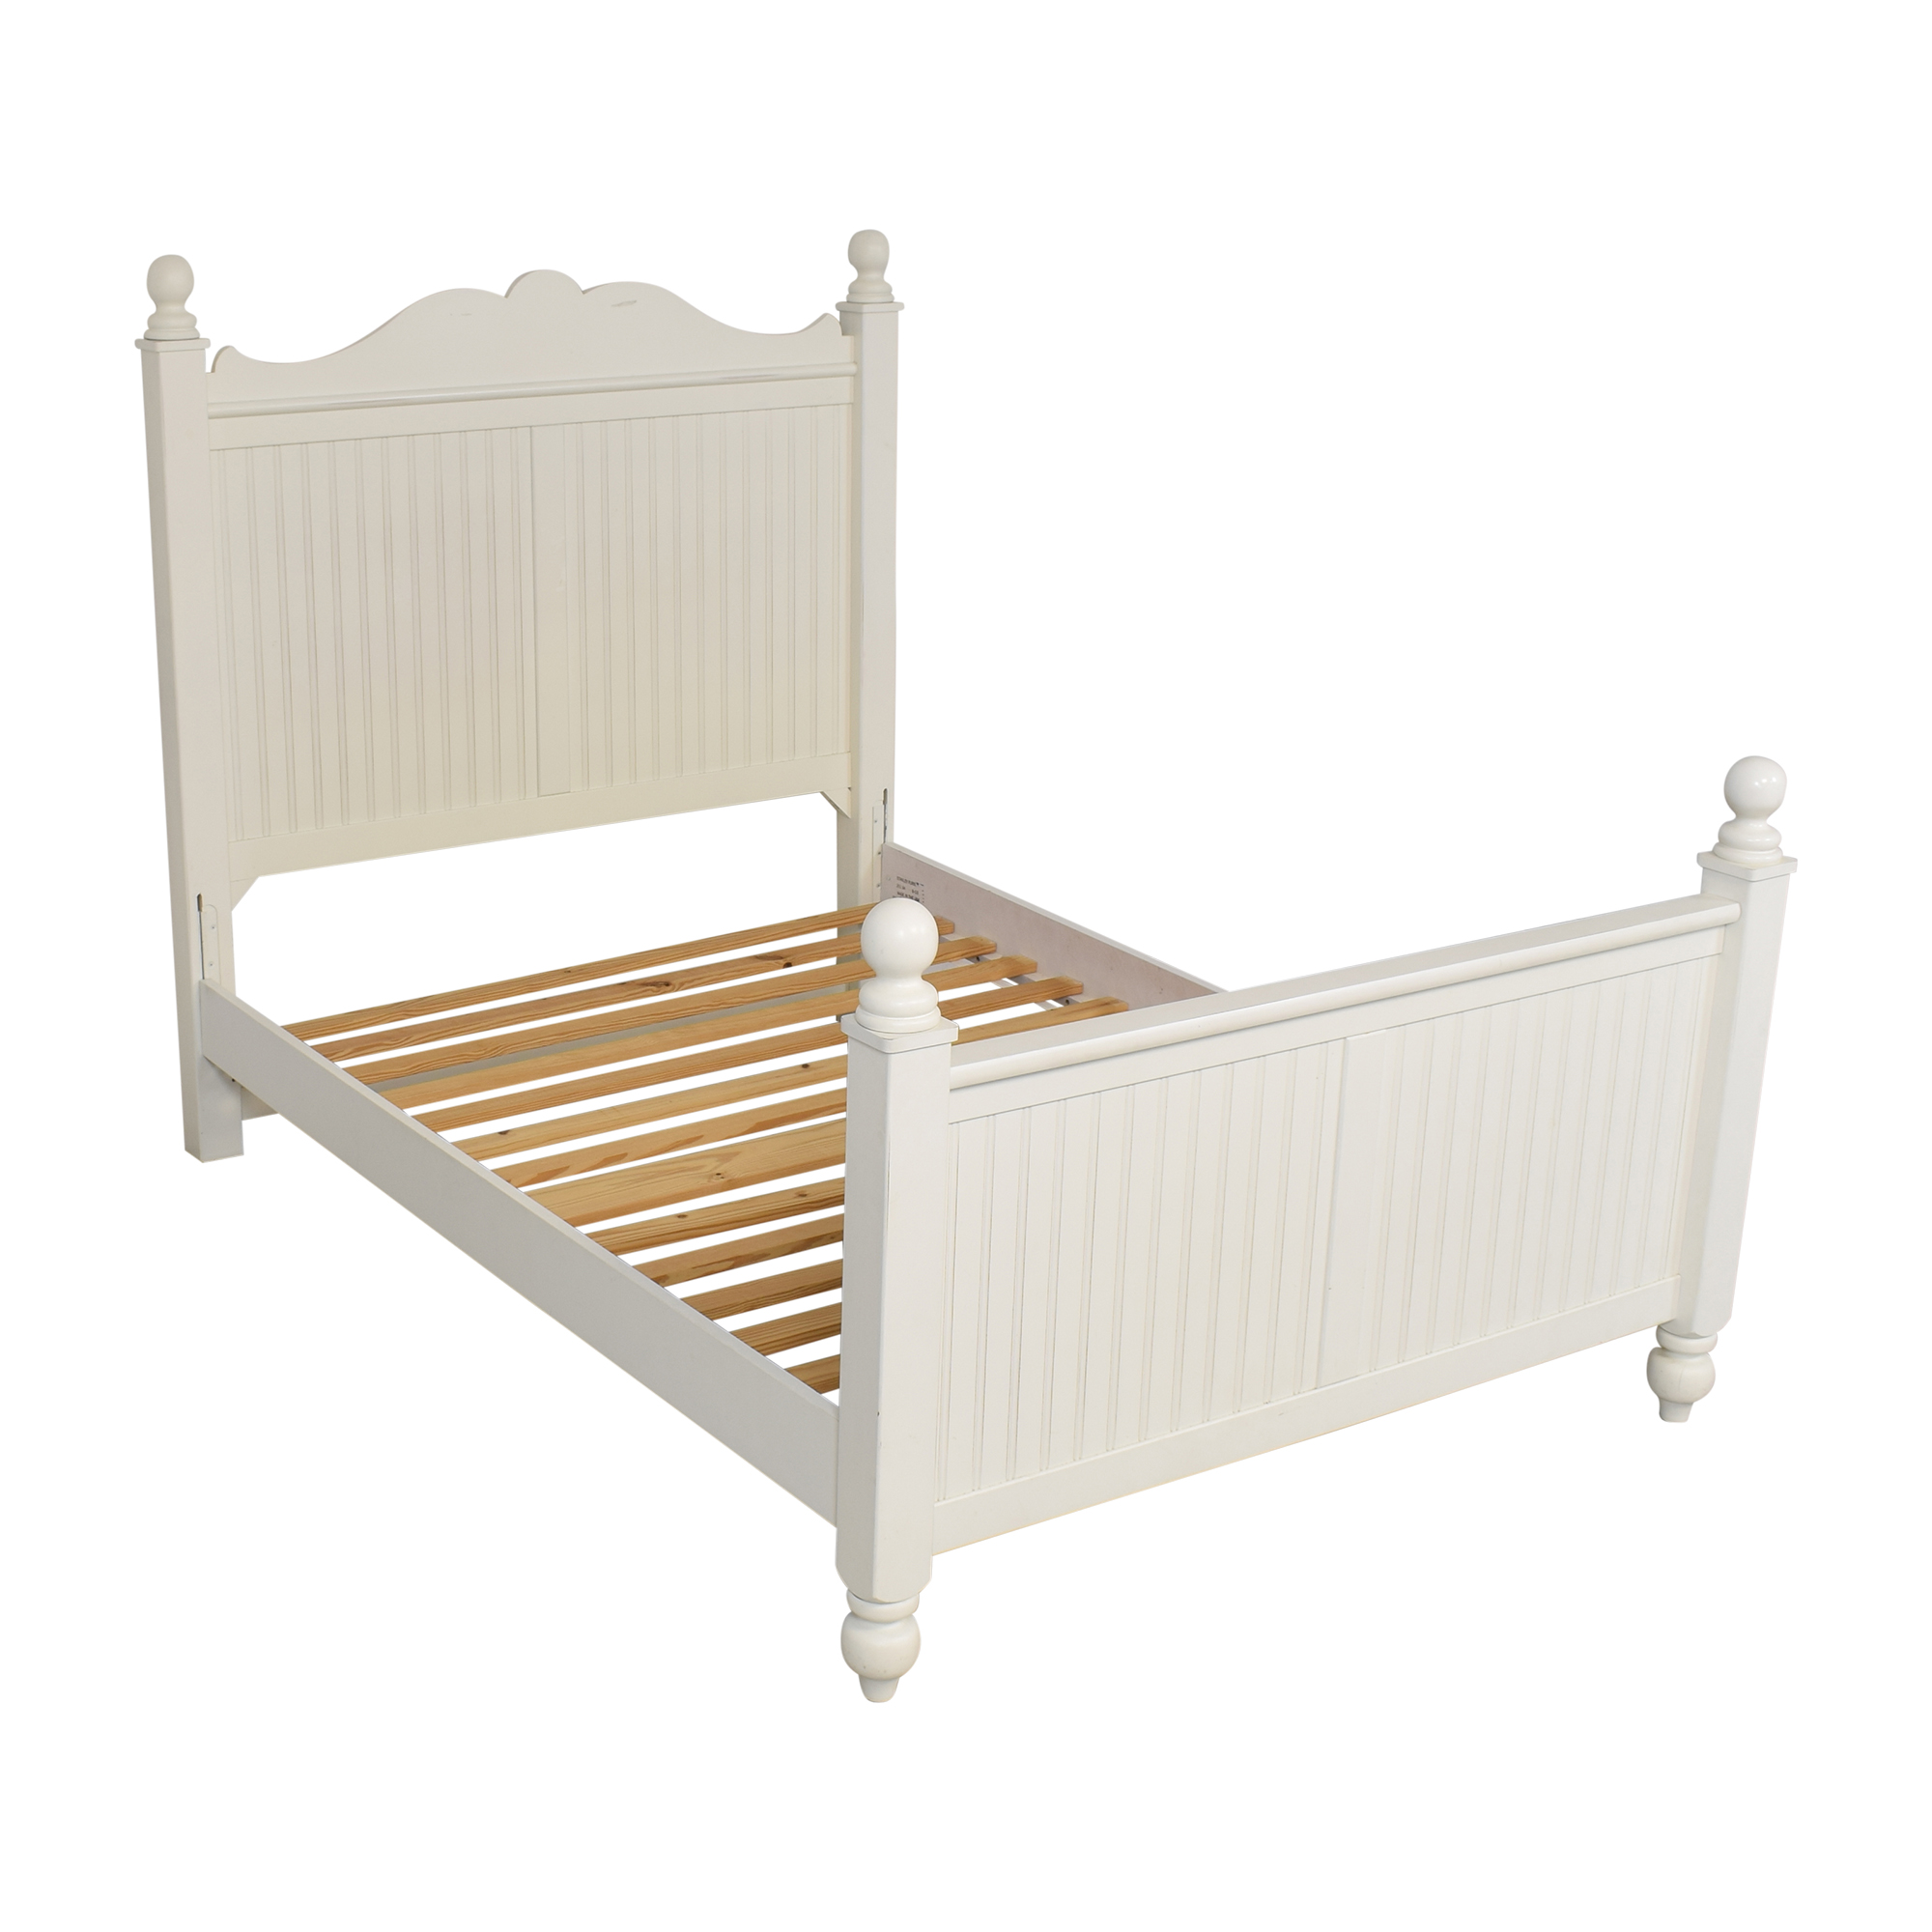 Stanley Furniture Stanley Furniture Full Bed coupon